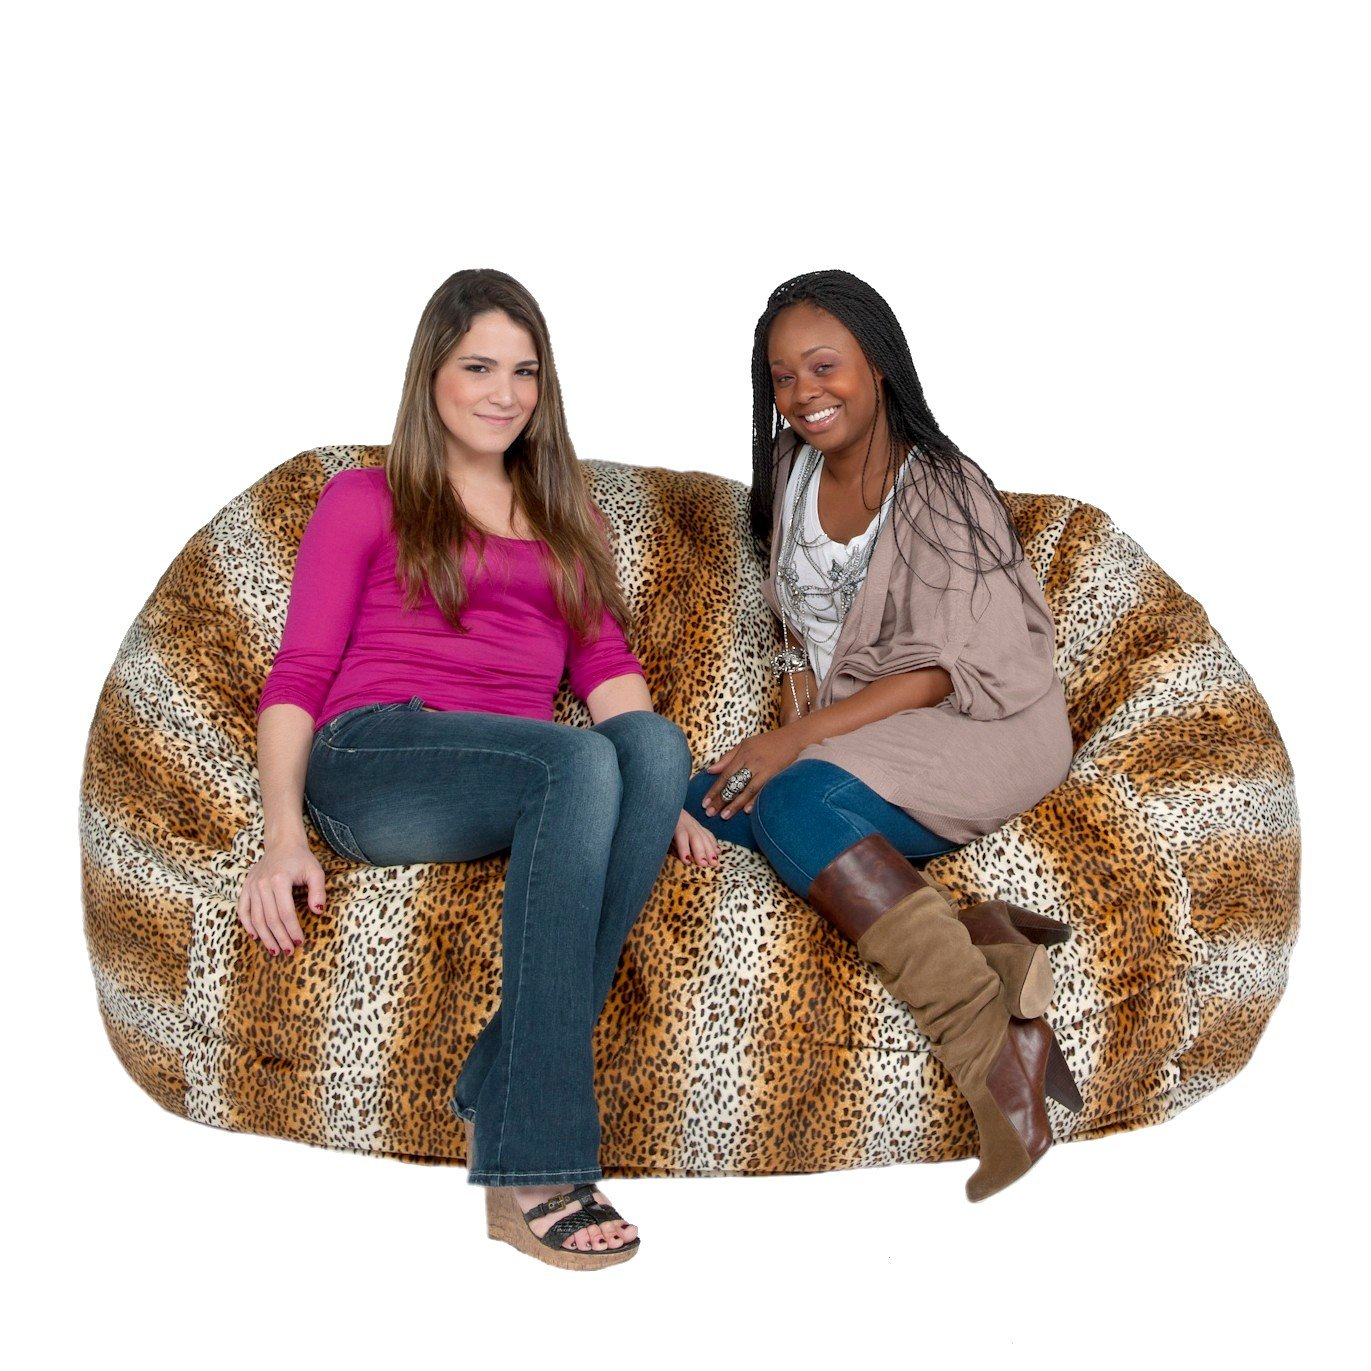 Bean bag chairs for adults - Amazon Com Cozy Sack 6 Feet Bean Bag Chair Large Leopard Print Kitchen Dining